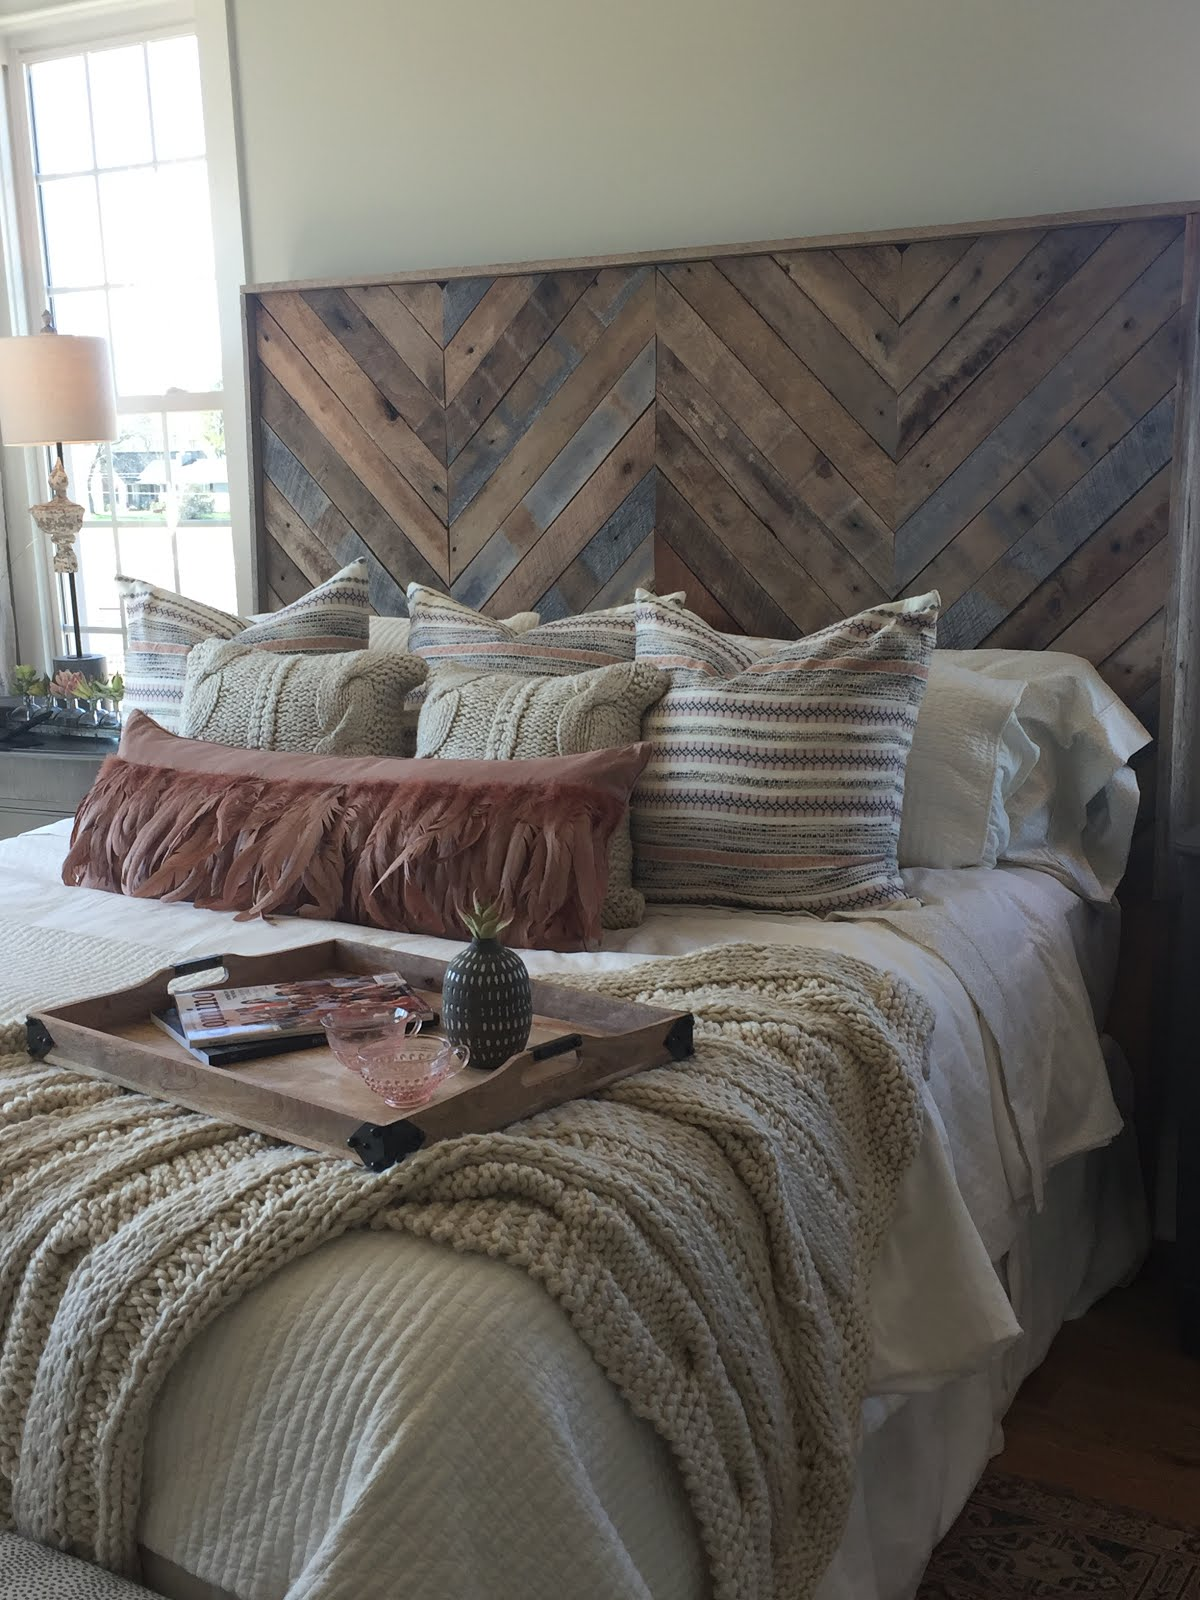 house for hope designer show house march 4 12 2017 creative day the beautiful use of natural lighting is one of my favorite features of the house the master bedroom designed by refresh home features a rustic boho chic